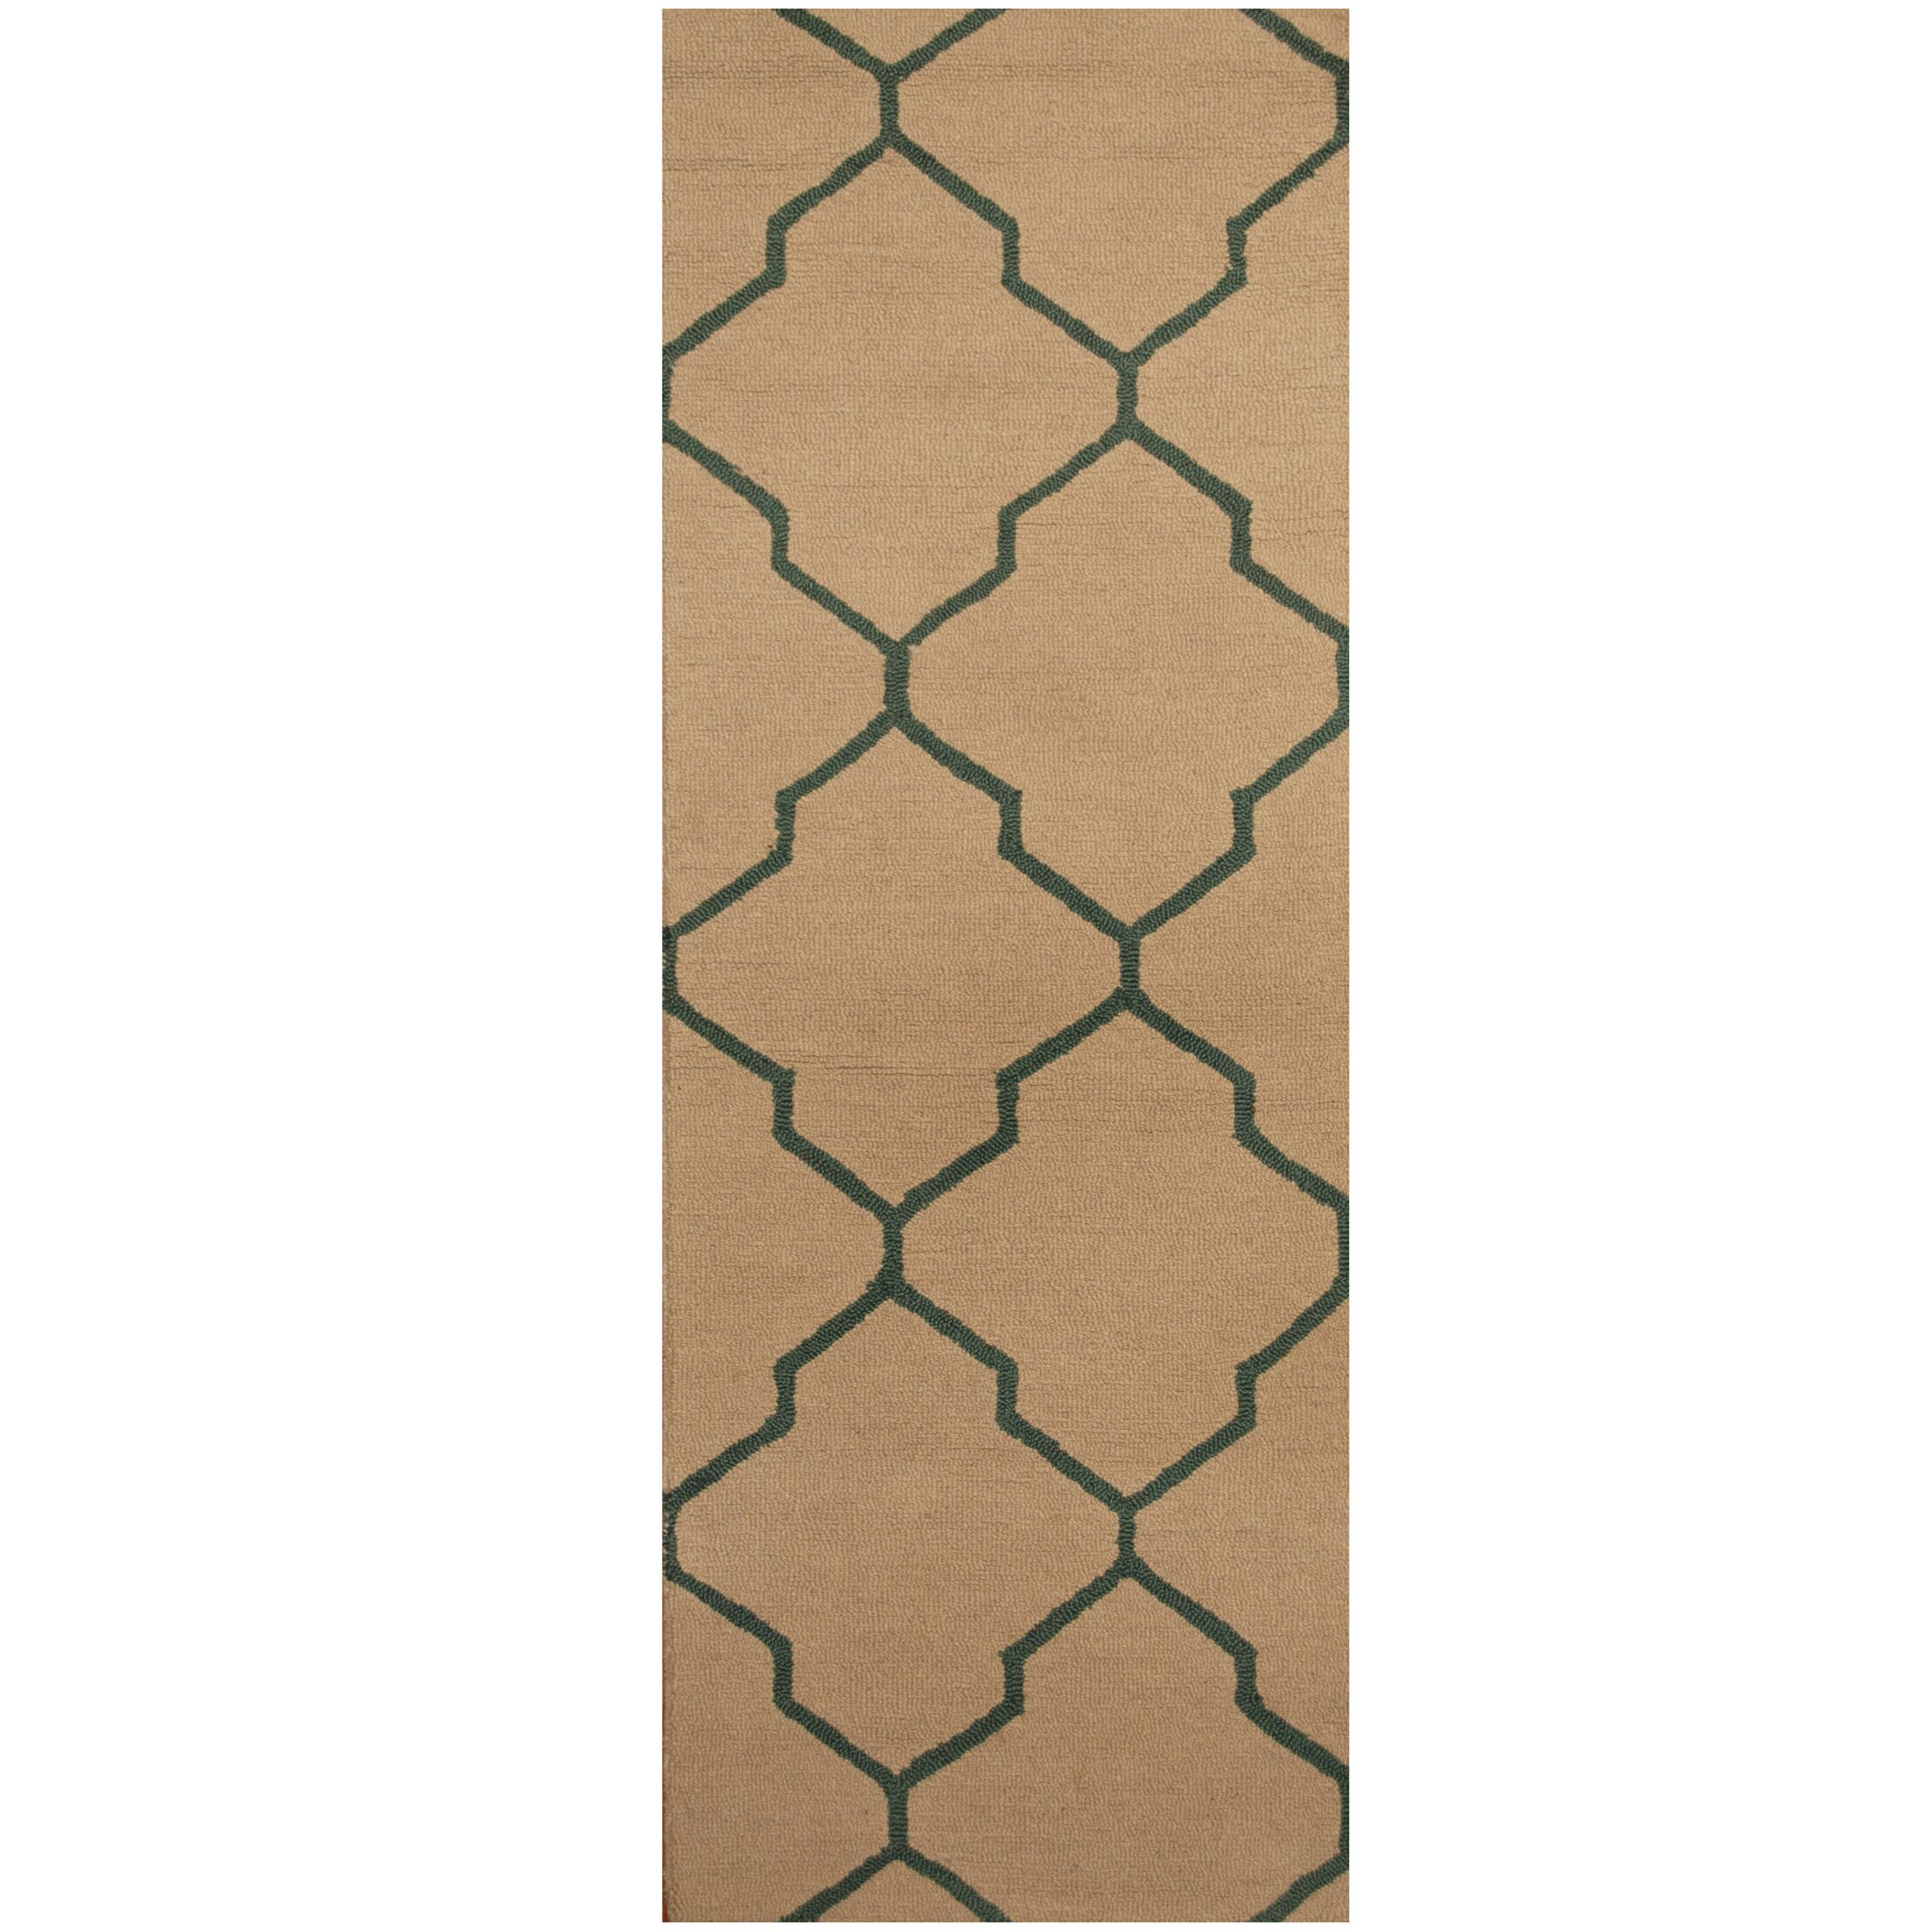 Hand-Tufted Beige/Green Area Rug